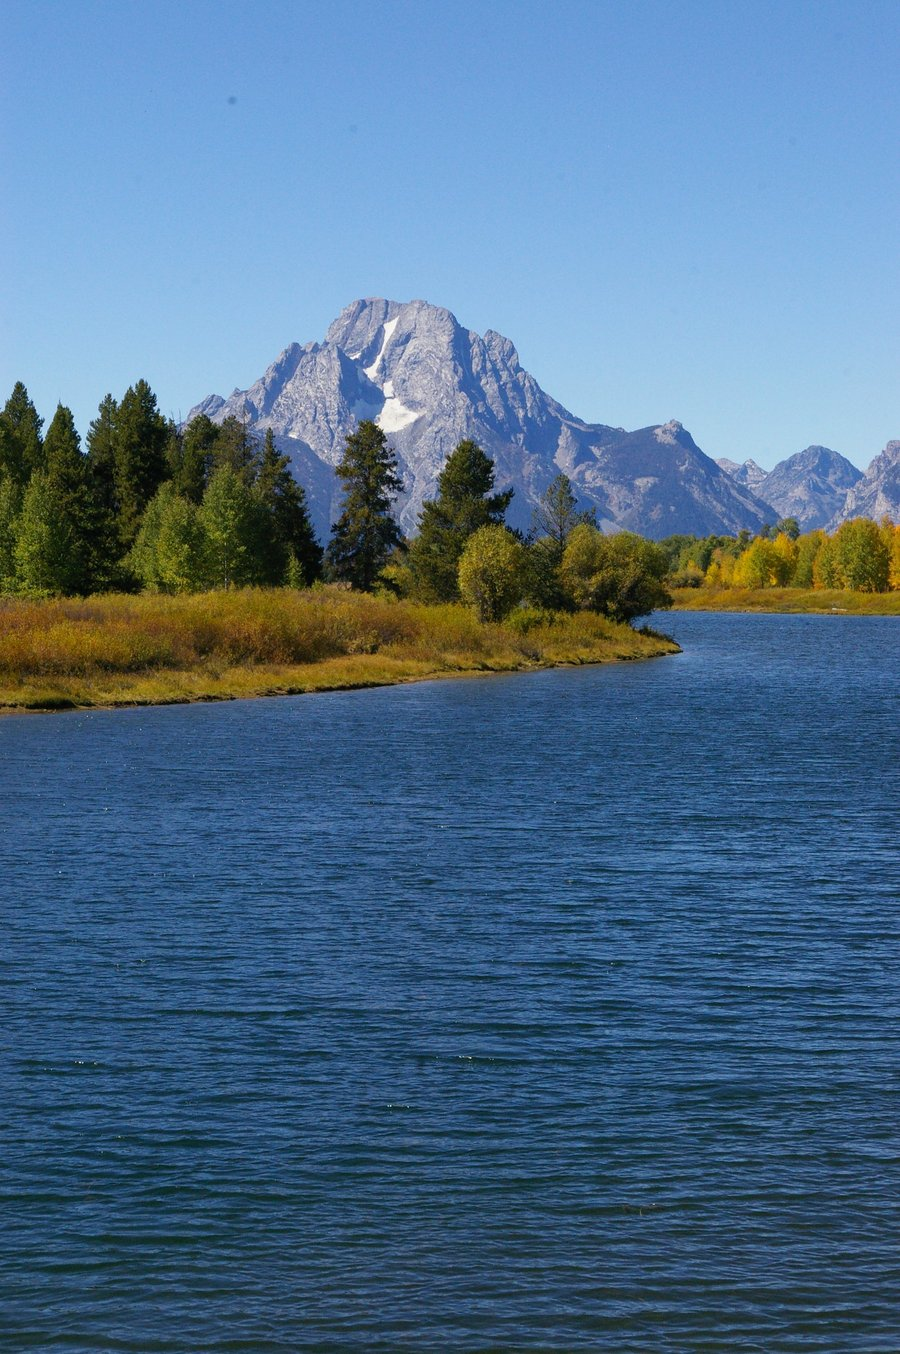 Jackson_Lake_-_Grand_Teton_National_Park.jpg